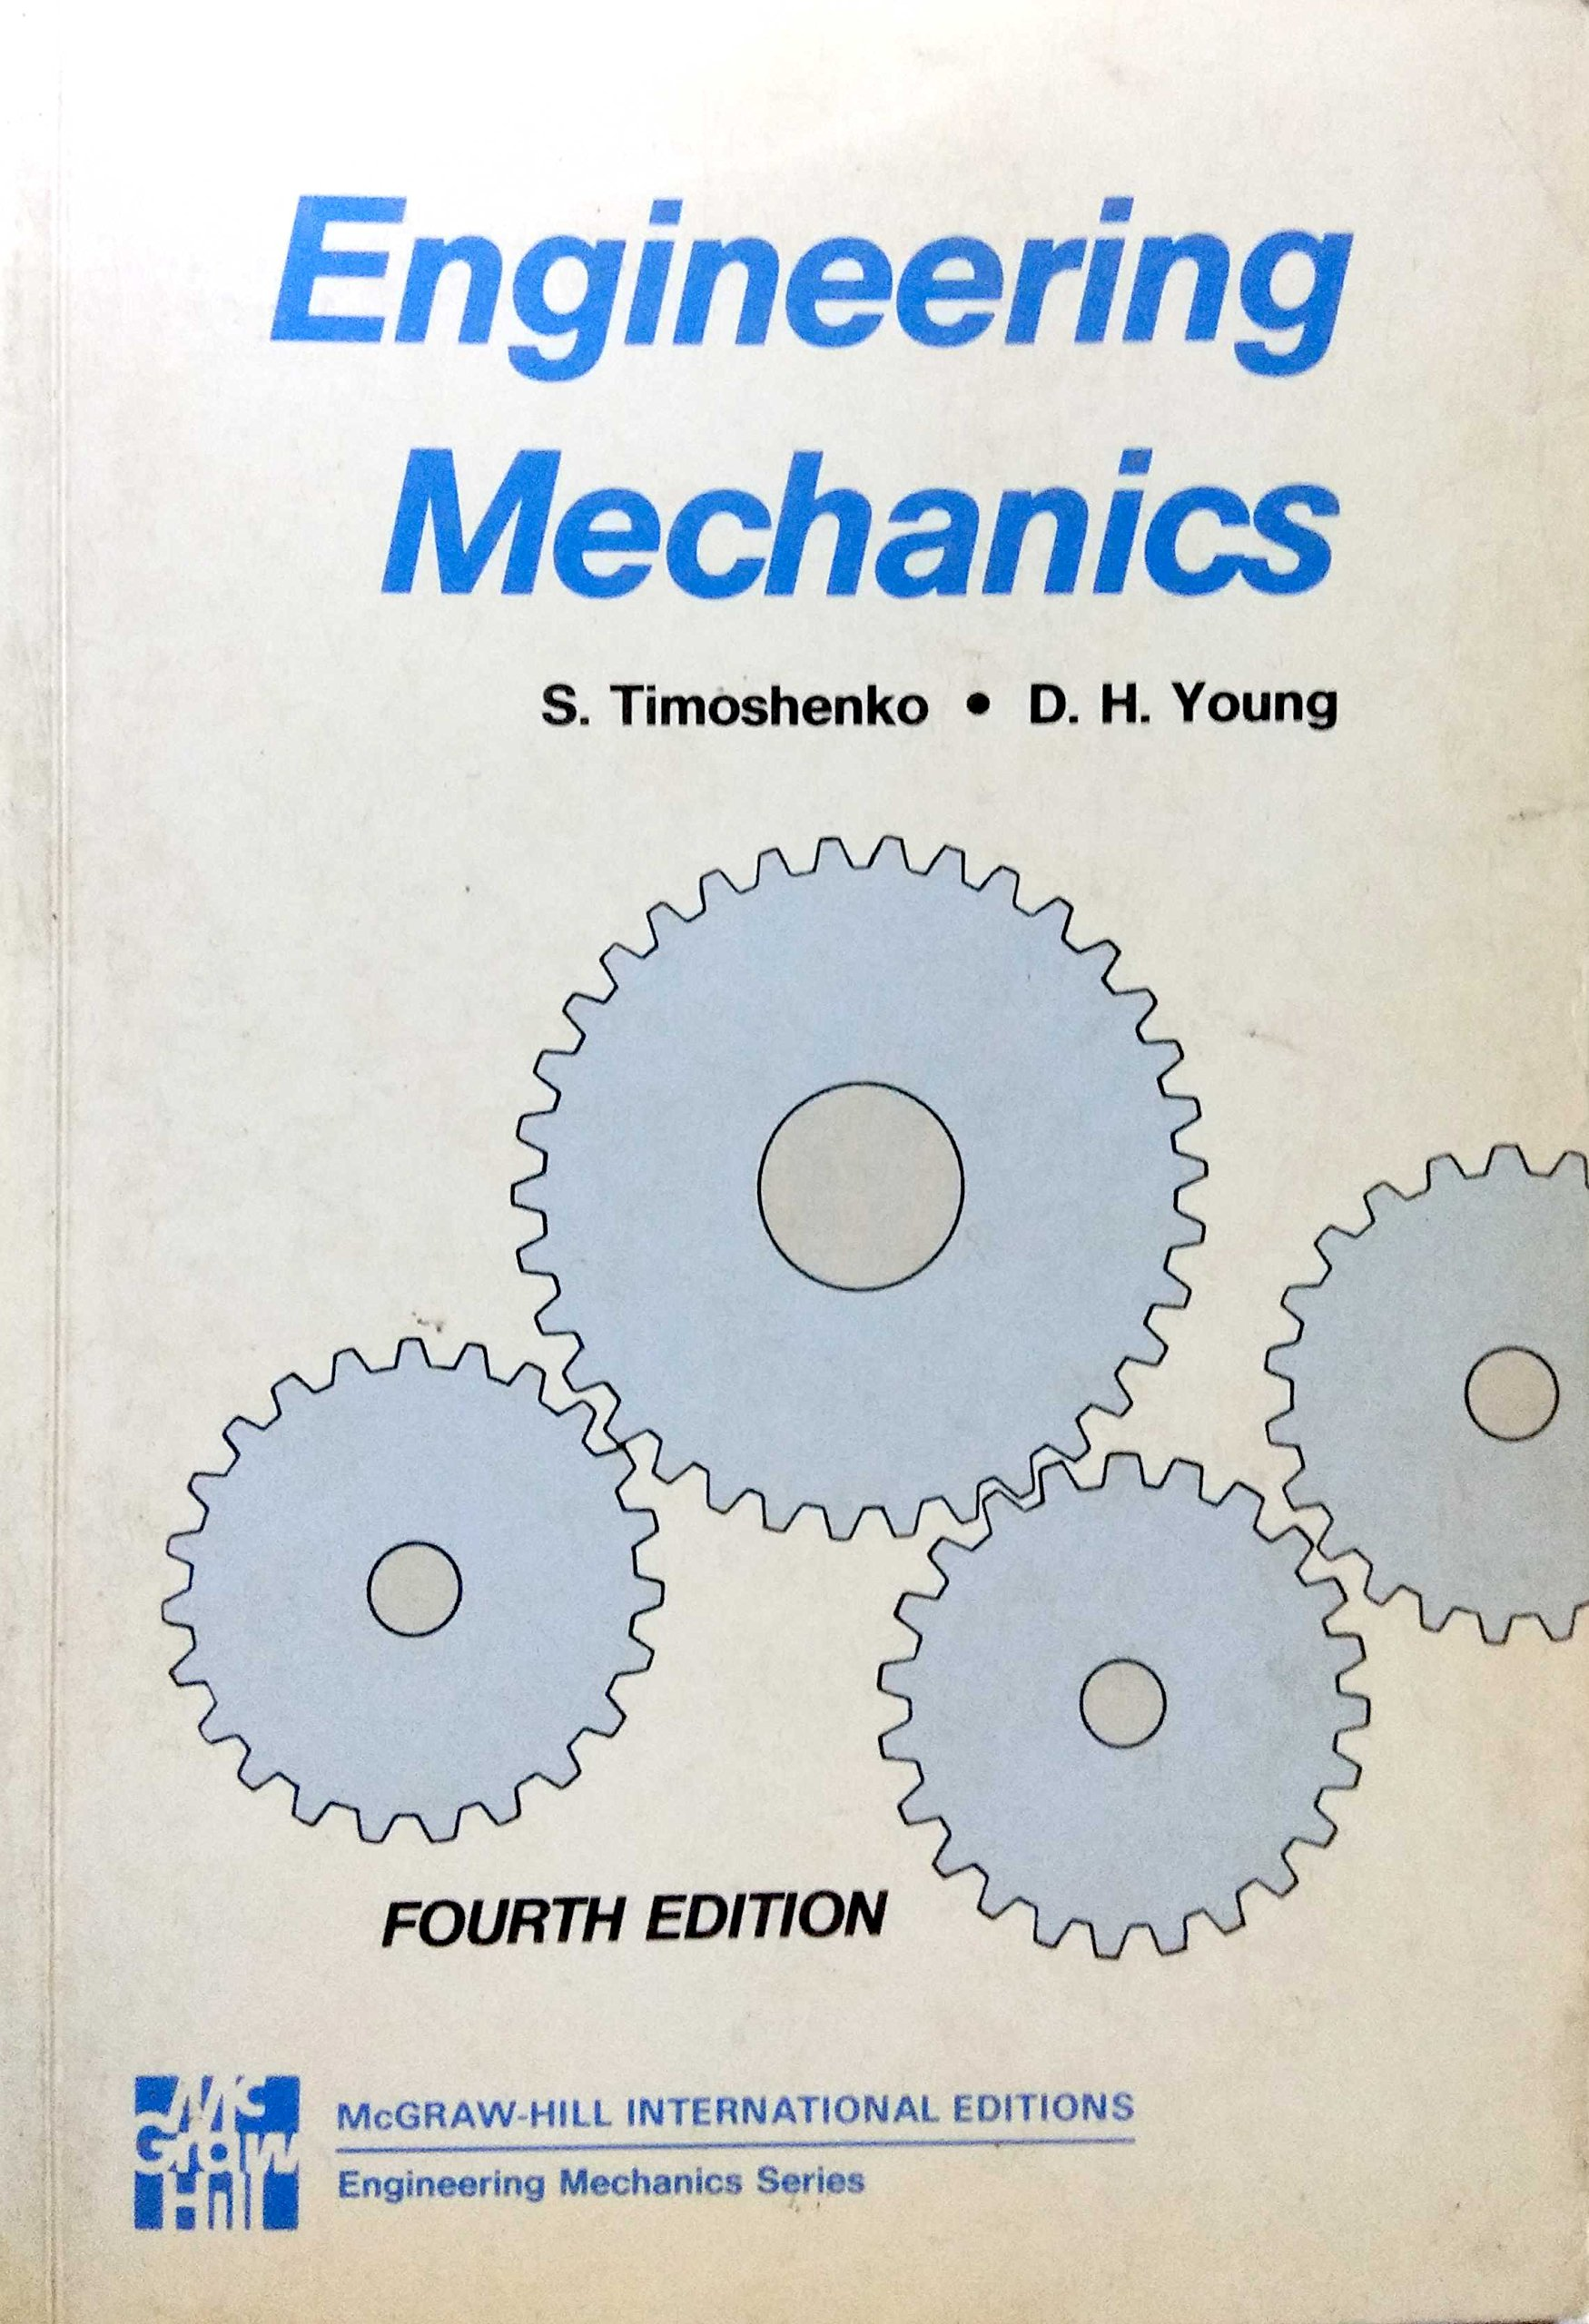 Amazon.in: Buy Engineering Mechanics by S. Timoshenko, D.H. Young Book  Online at Low Prices in India | Engineering Mechanics by S. Timoshenko, ...